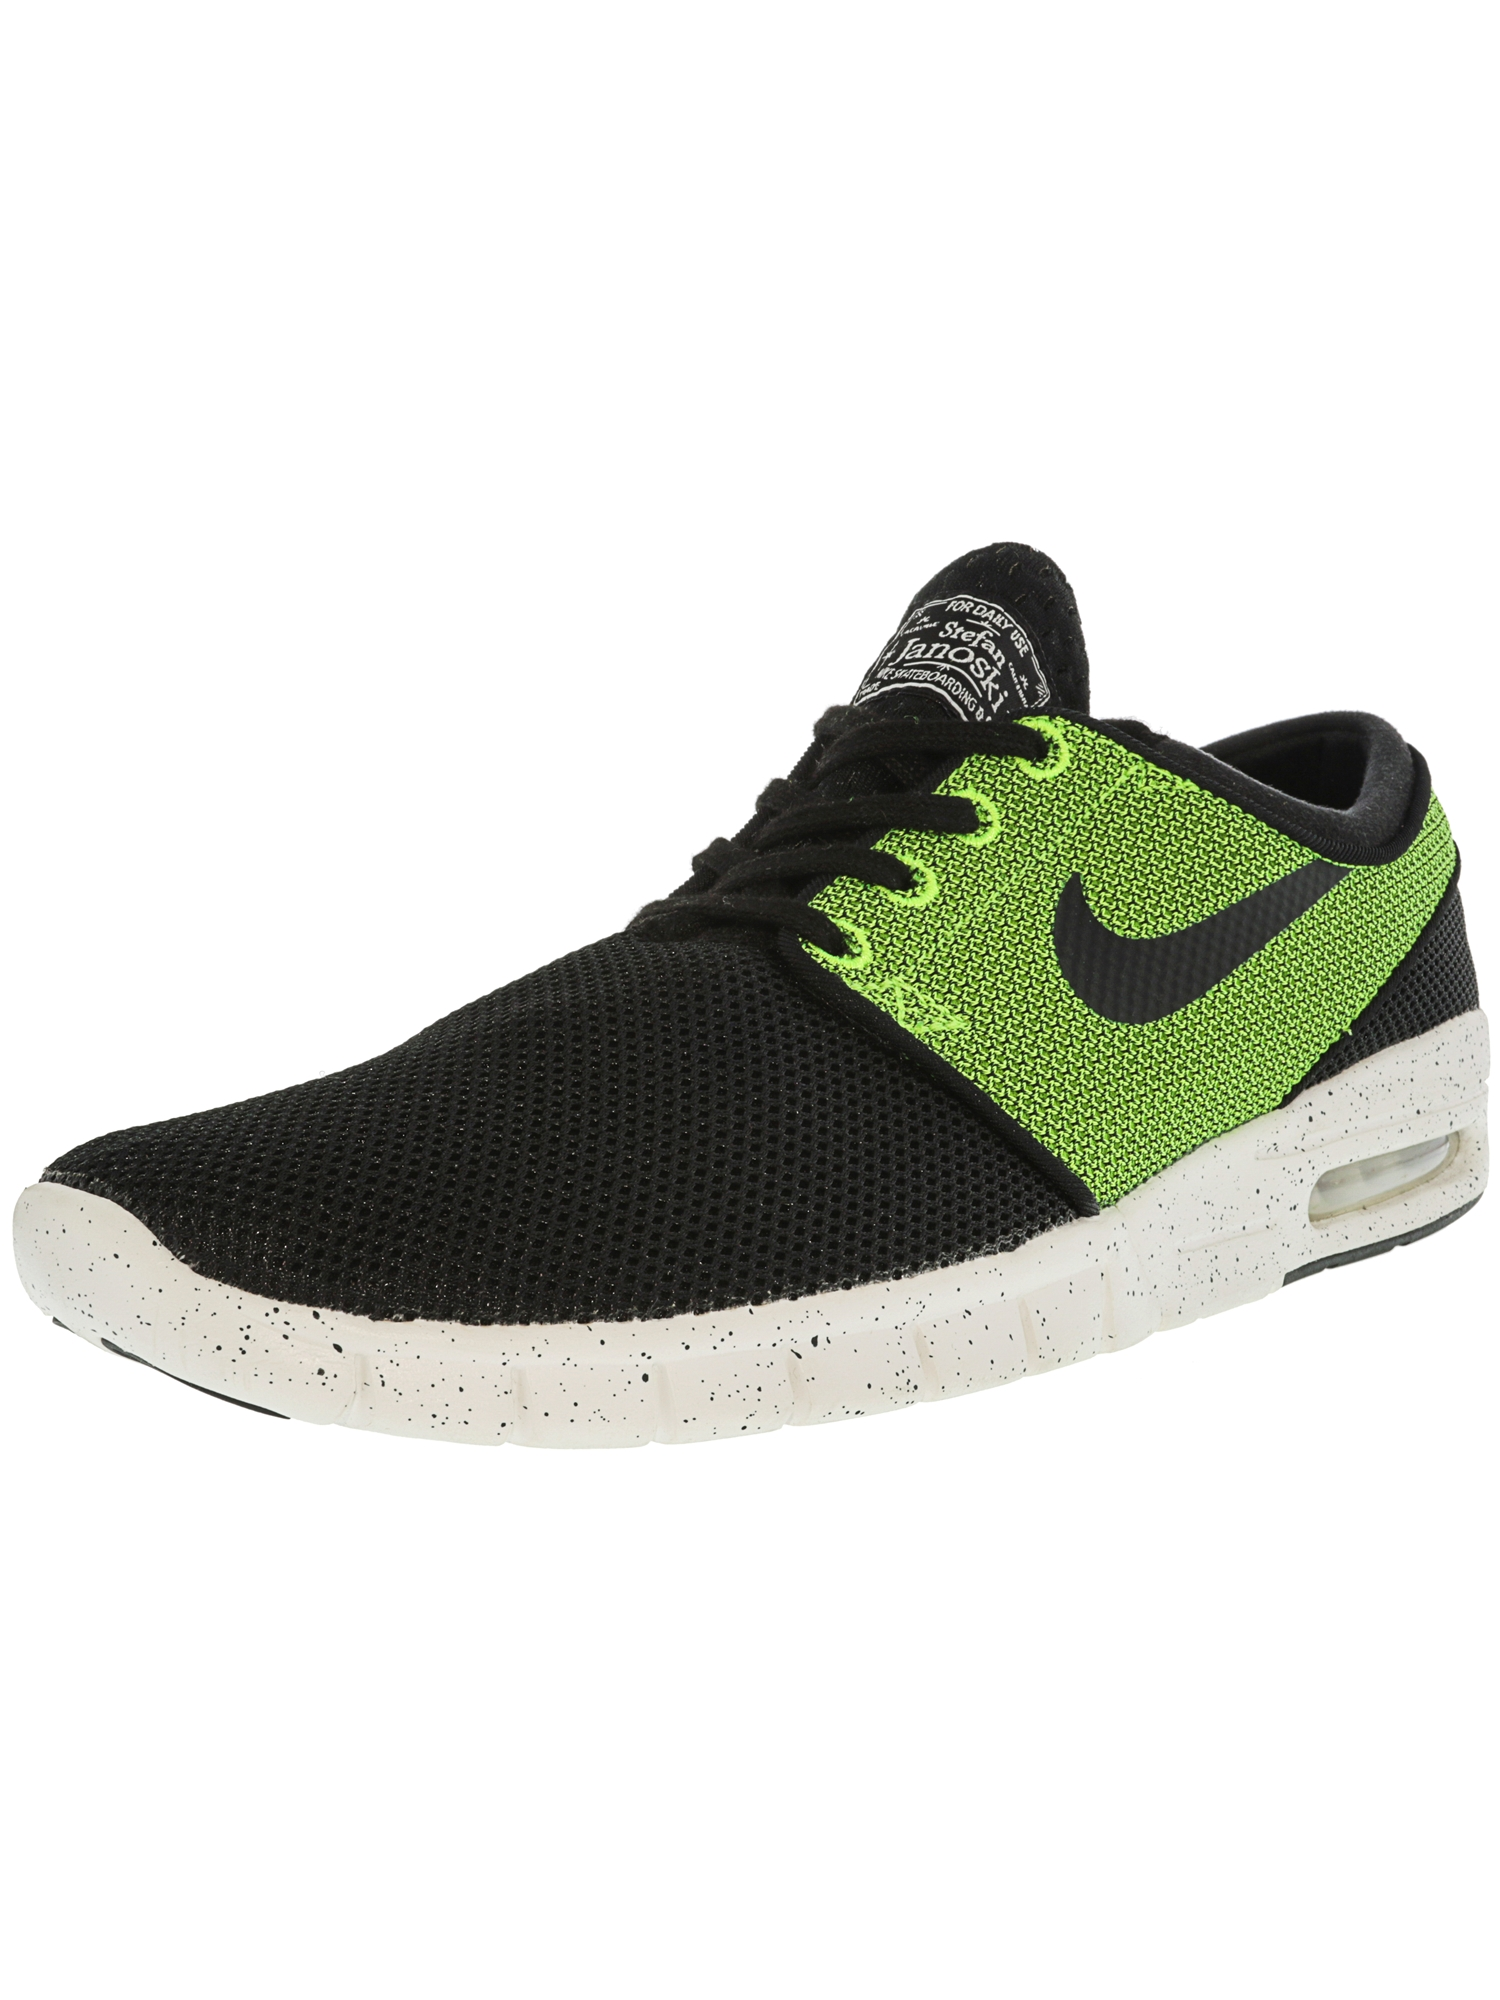 2cbf050d9659 Nike Men s Stefan Janoski Max Black   White-Deep Night Ankle-High Running  Shoe - 9.5M